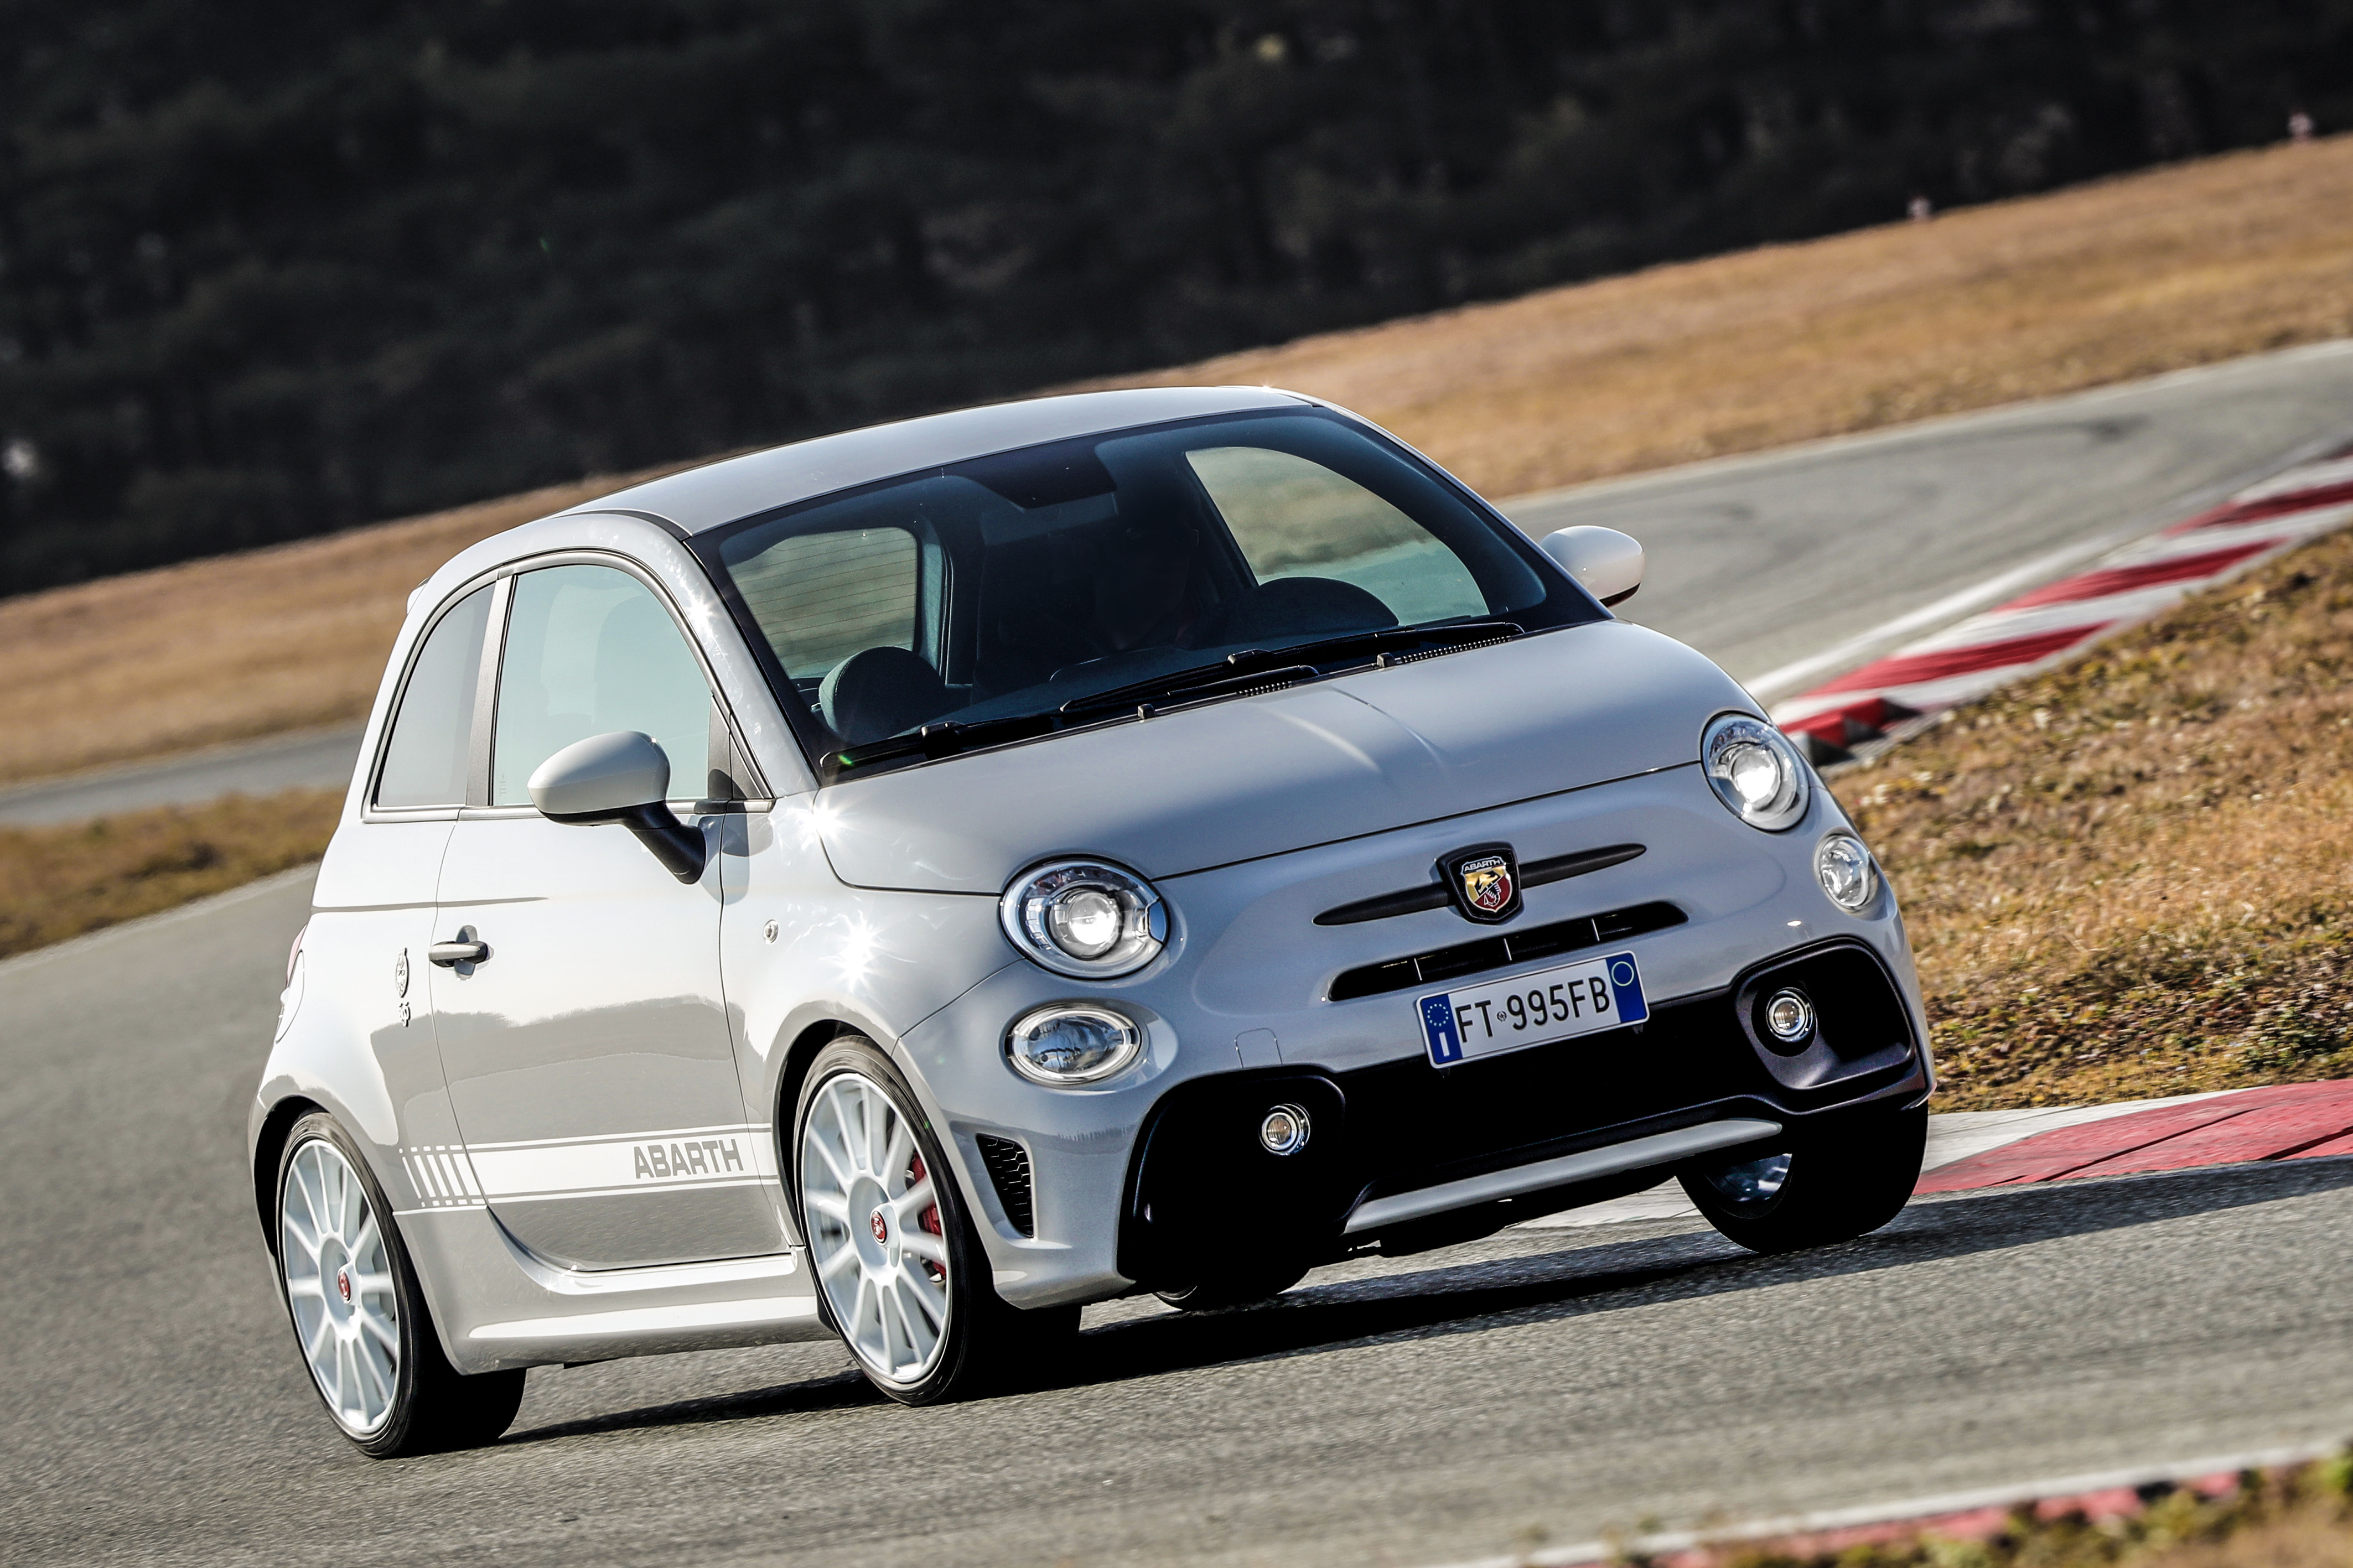 Abarth Is Celebrating  Years Of History And Introducing The  Esseesse And The  Rally Tribute At The Geneva International Motor Show Press Releases